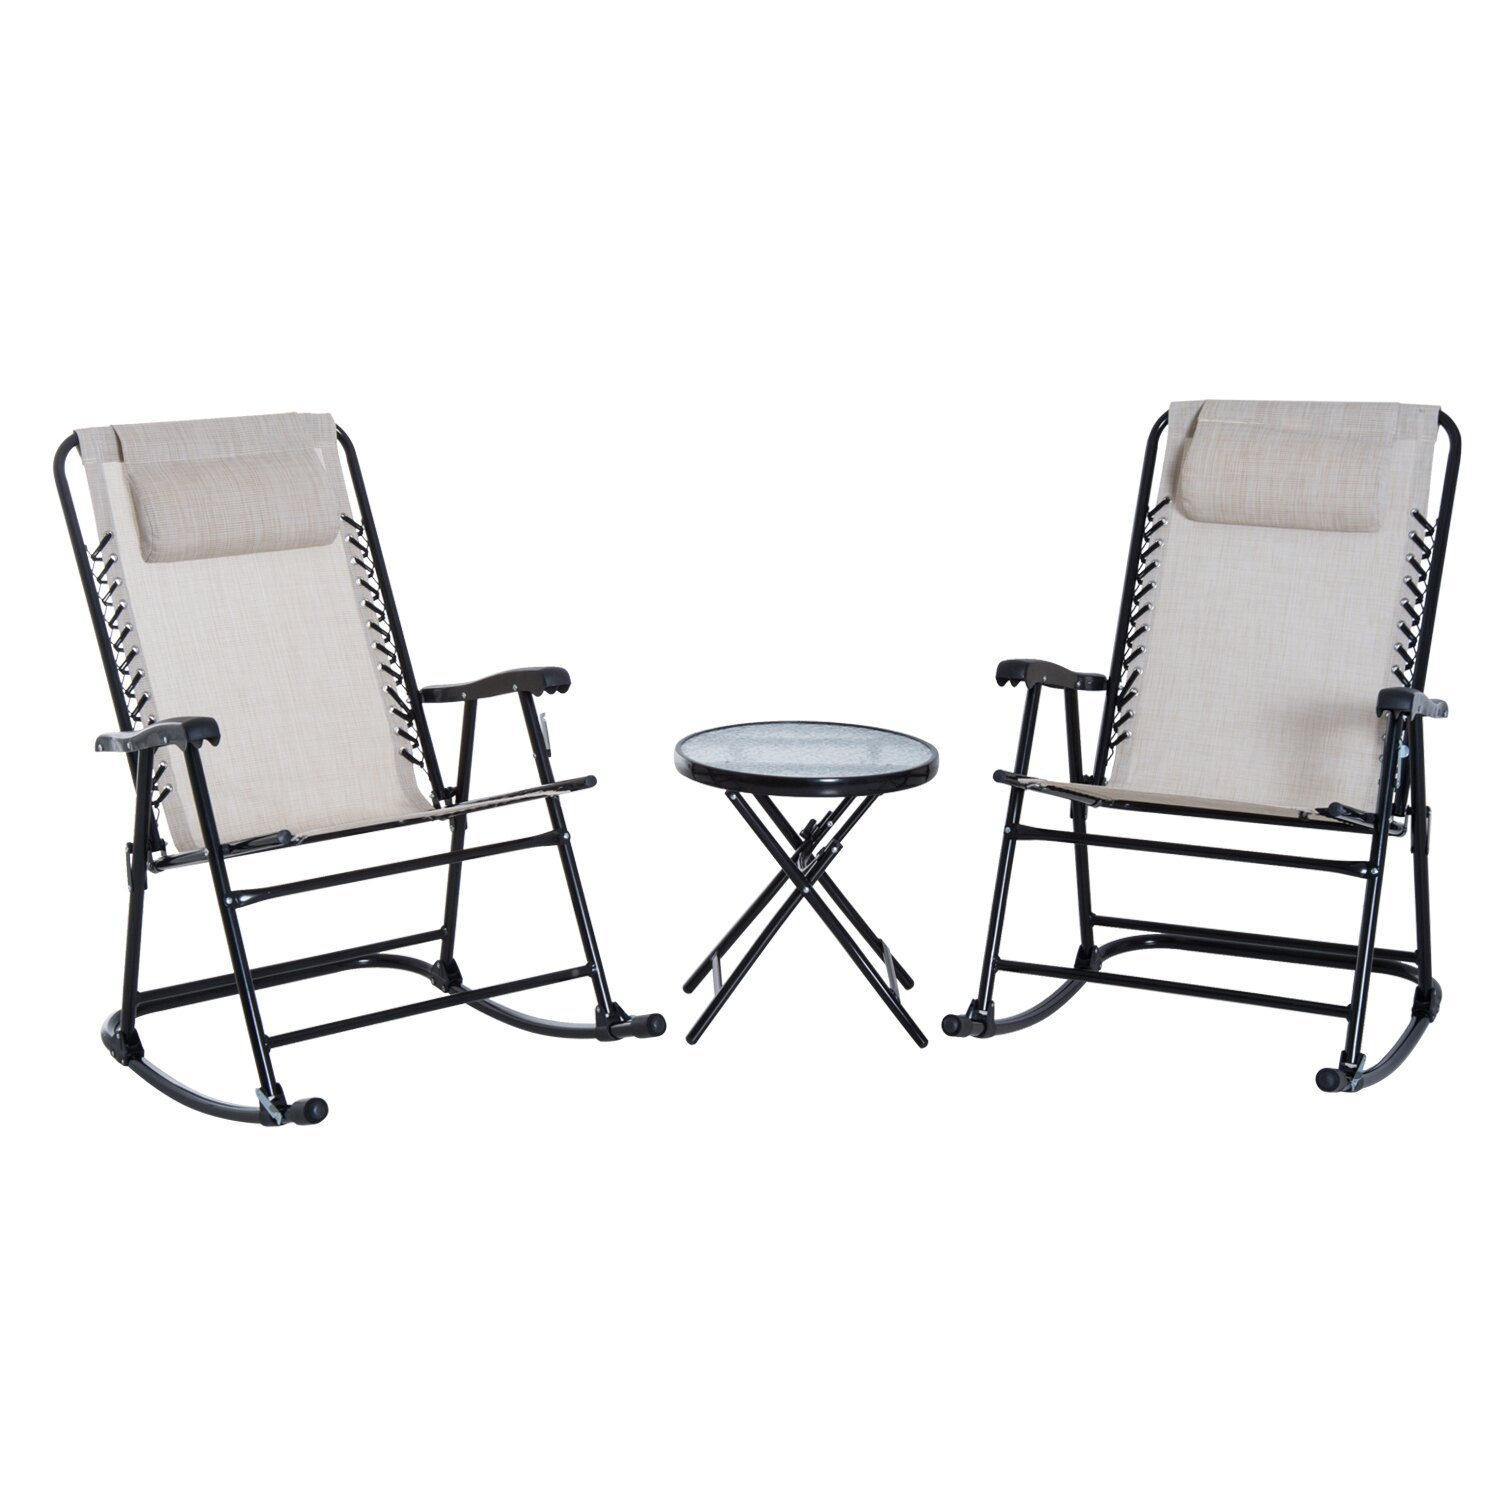 Outsunny 3 Piece Outdoor Rocking Chair Patio Table Seating Set Folding –  Cream White With Rocking Chairs In Cream Fabric And White (#15 of 20)